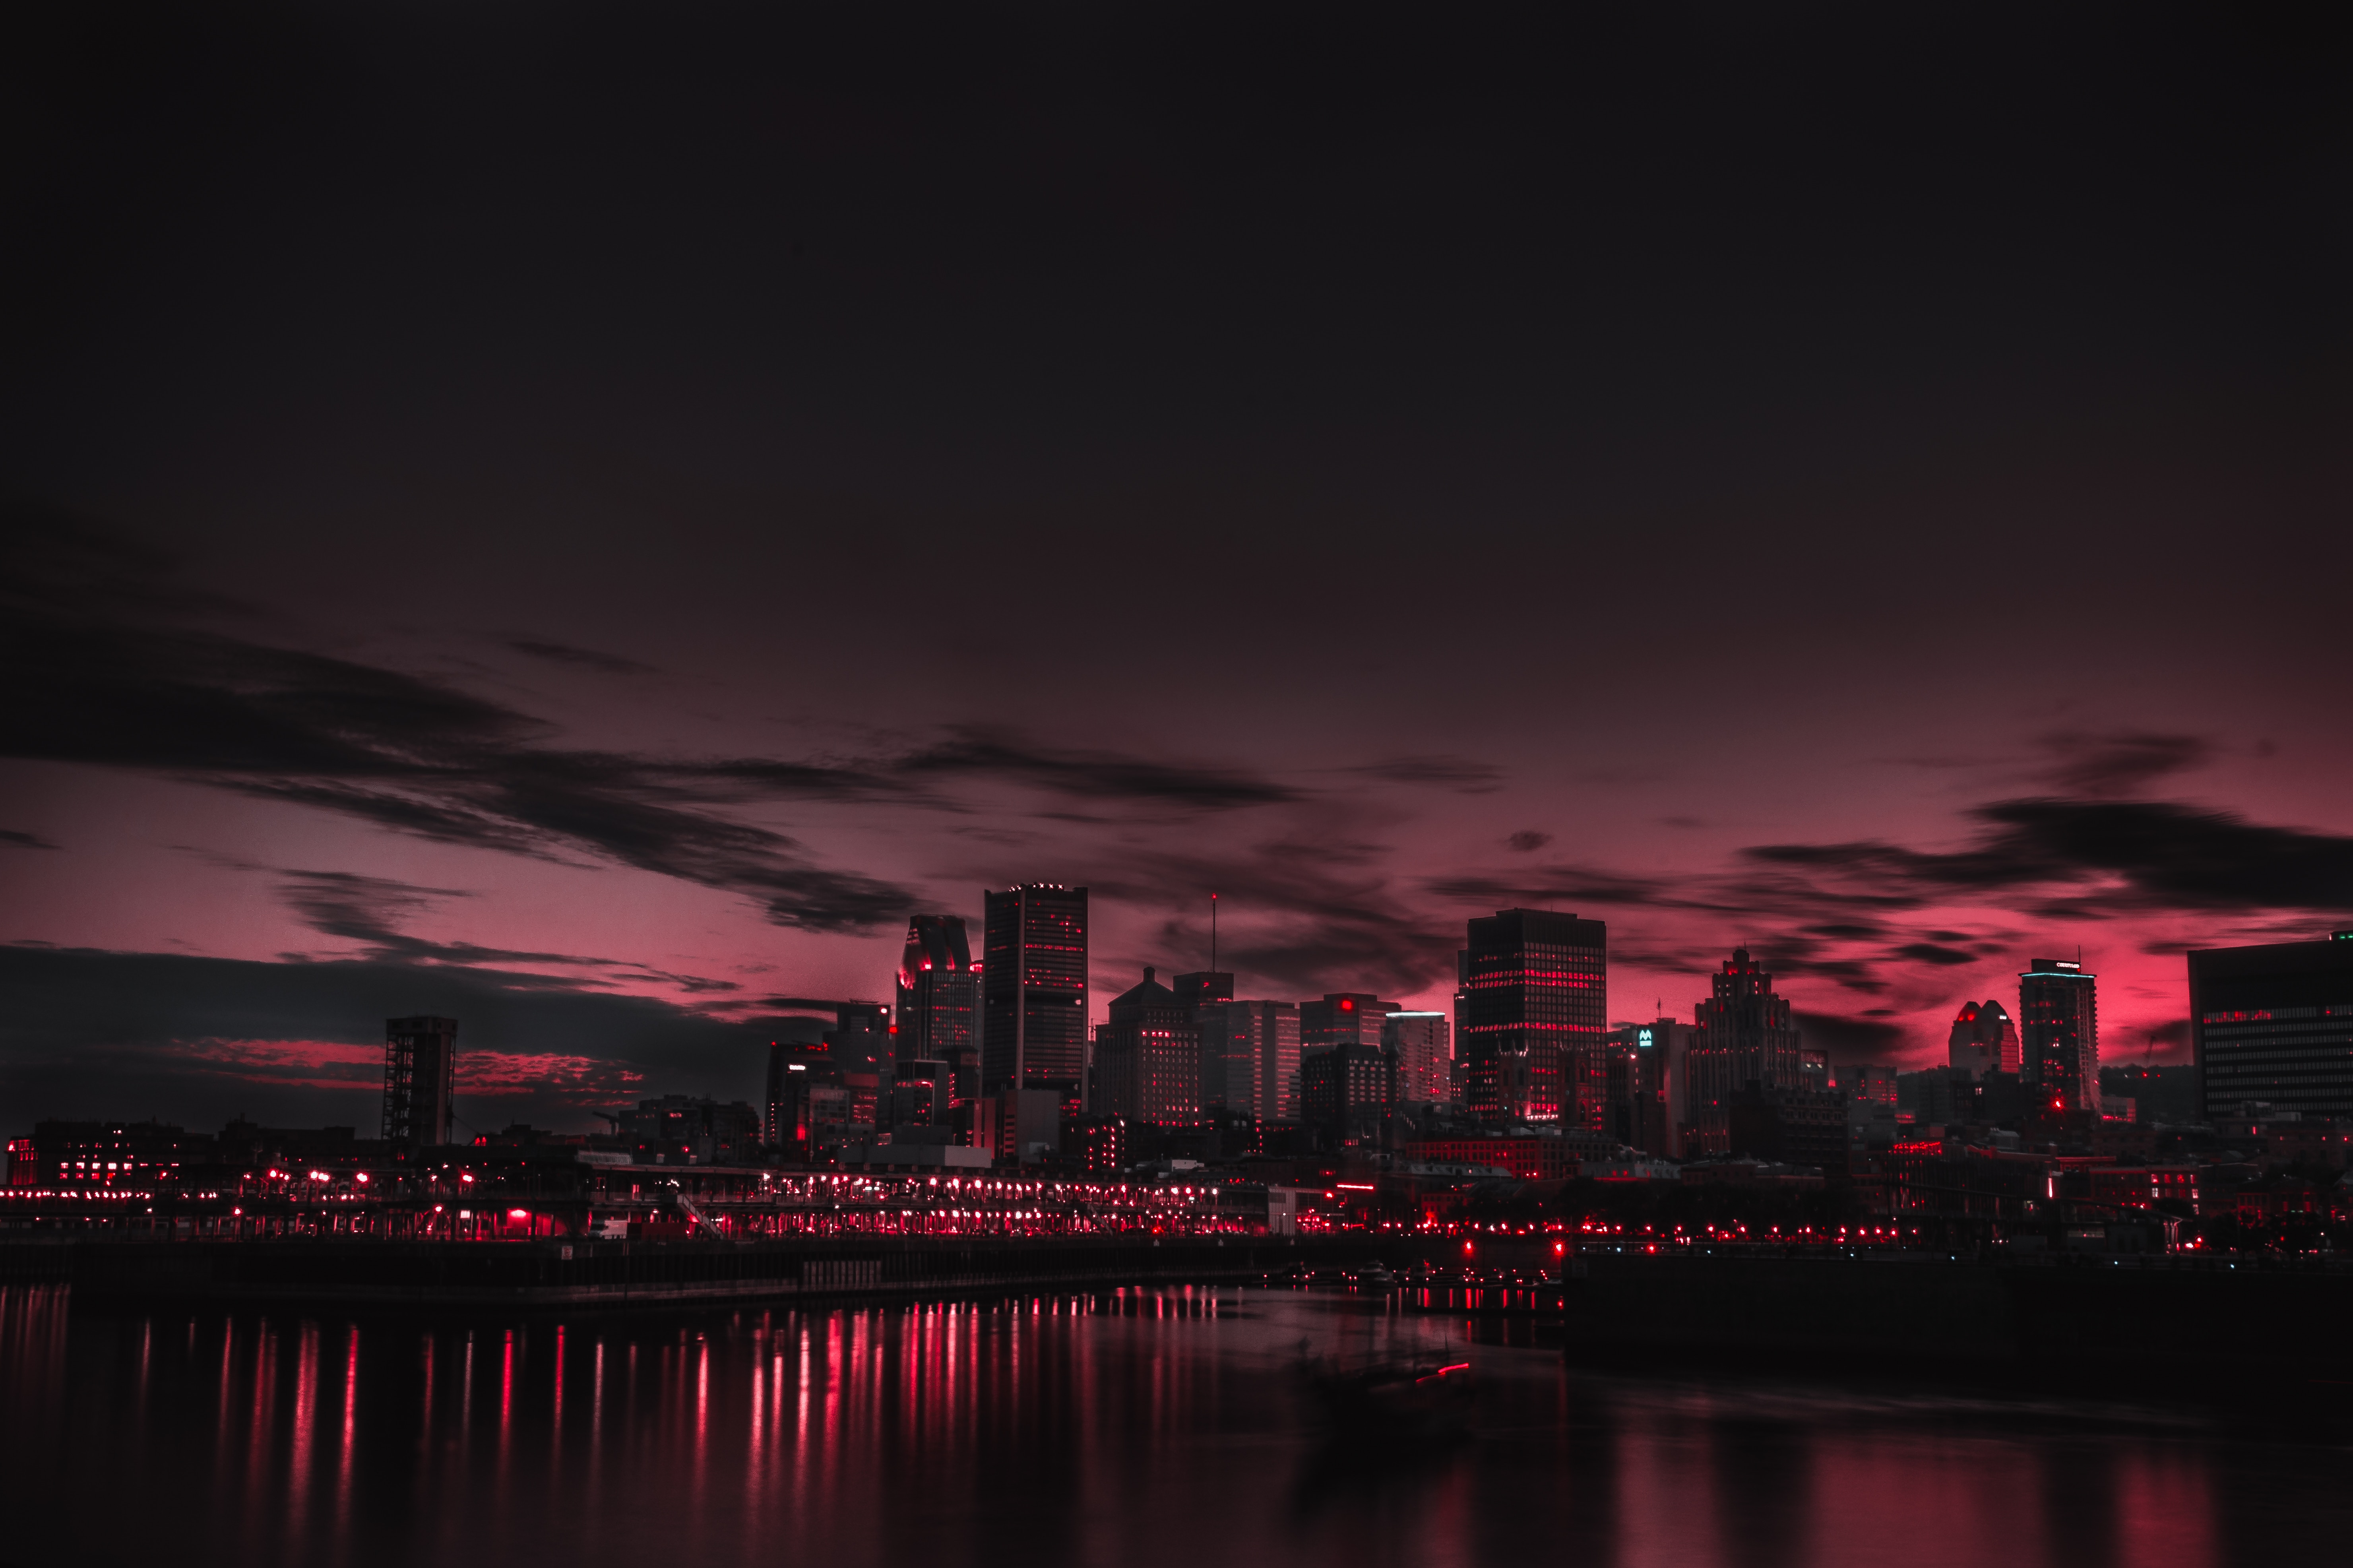 General 5920x3945 building cityscape red sunset lake Canada city lights dark city